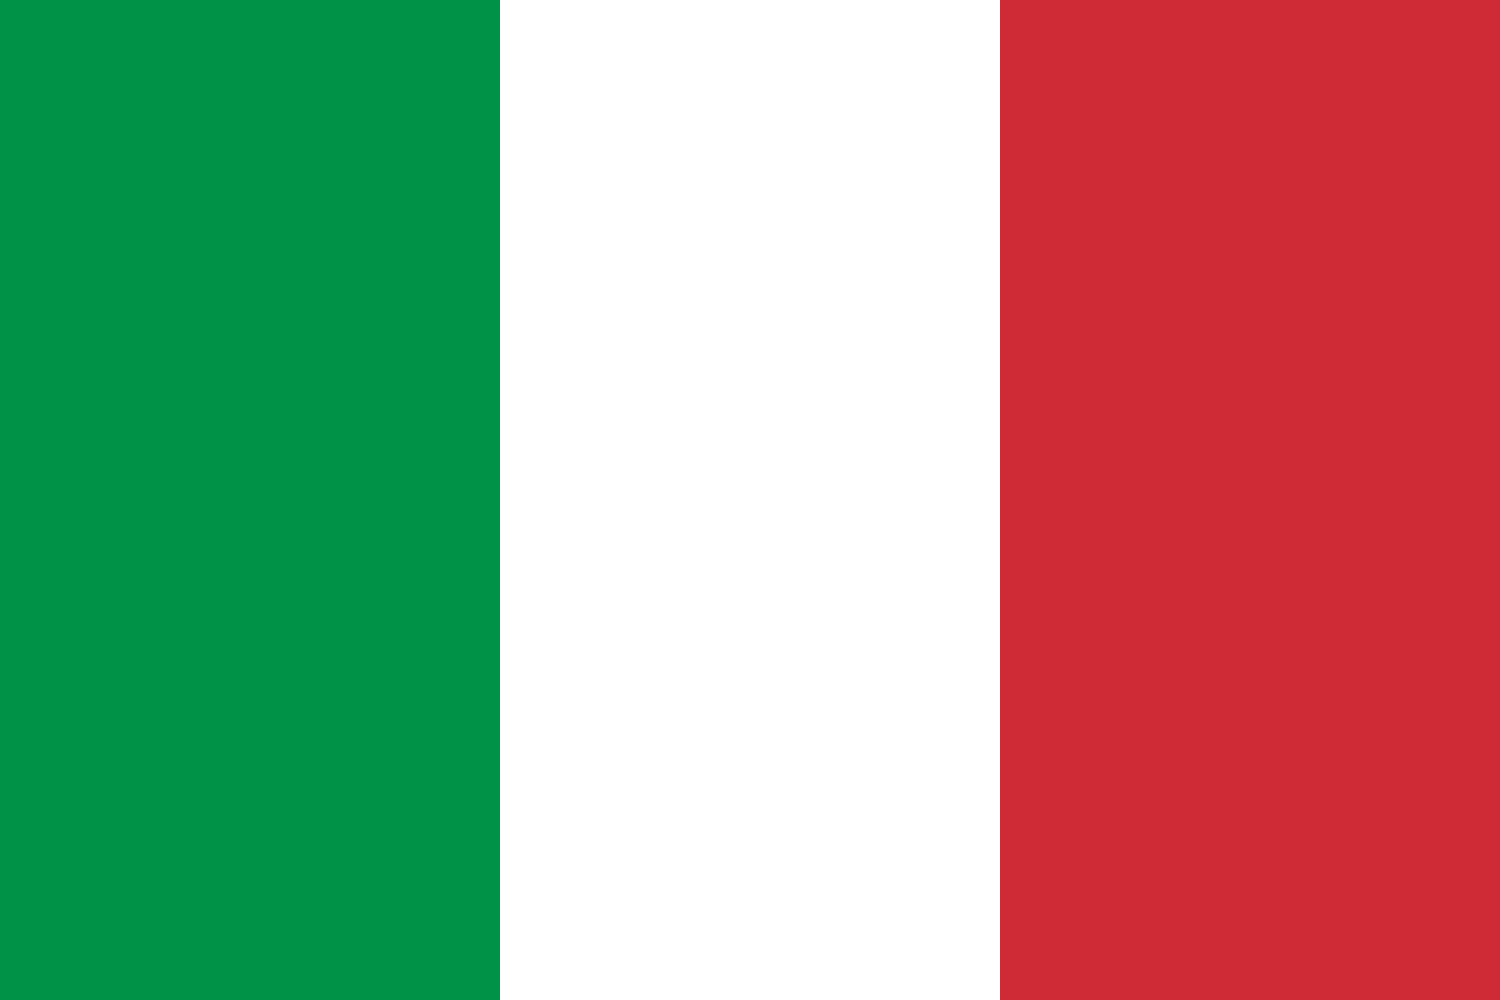 Flag_of_Italy-01